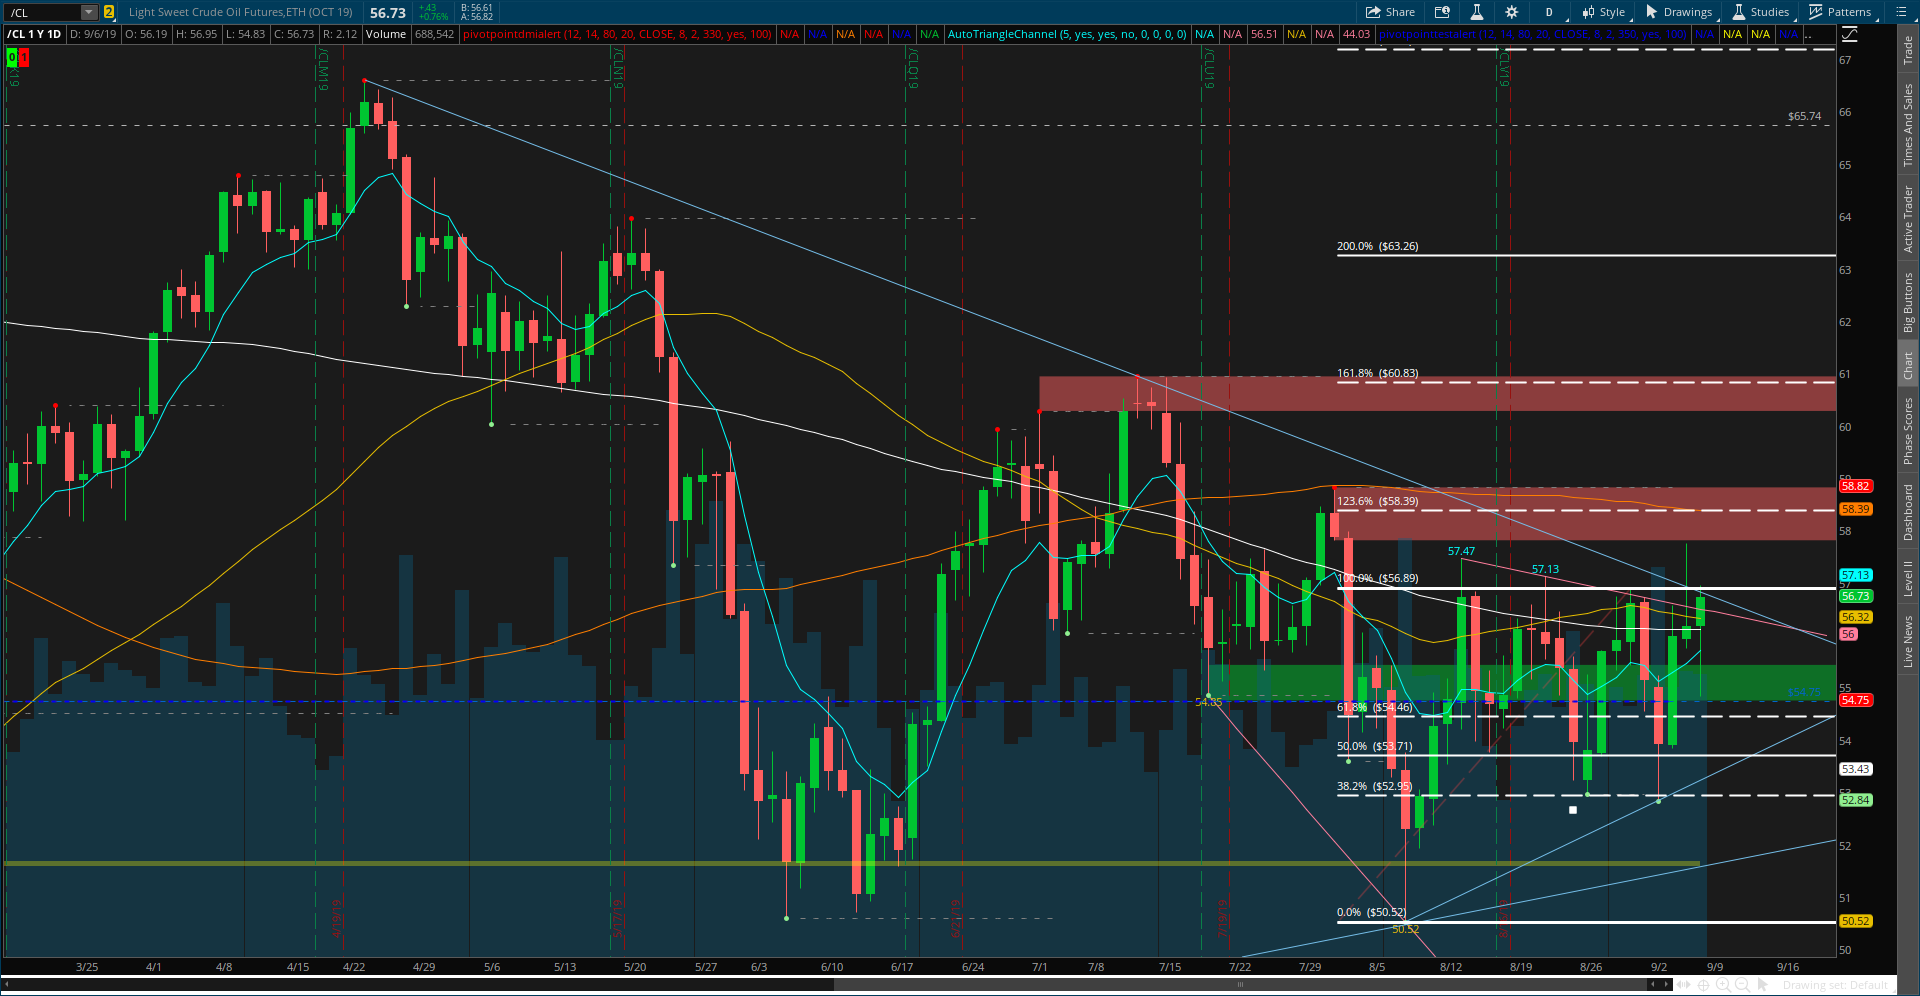 CL - Light Sweet Crude Oil Futures.png